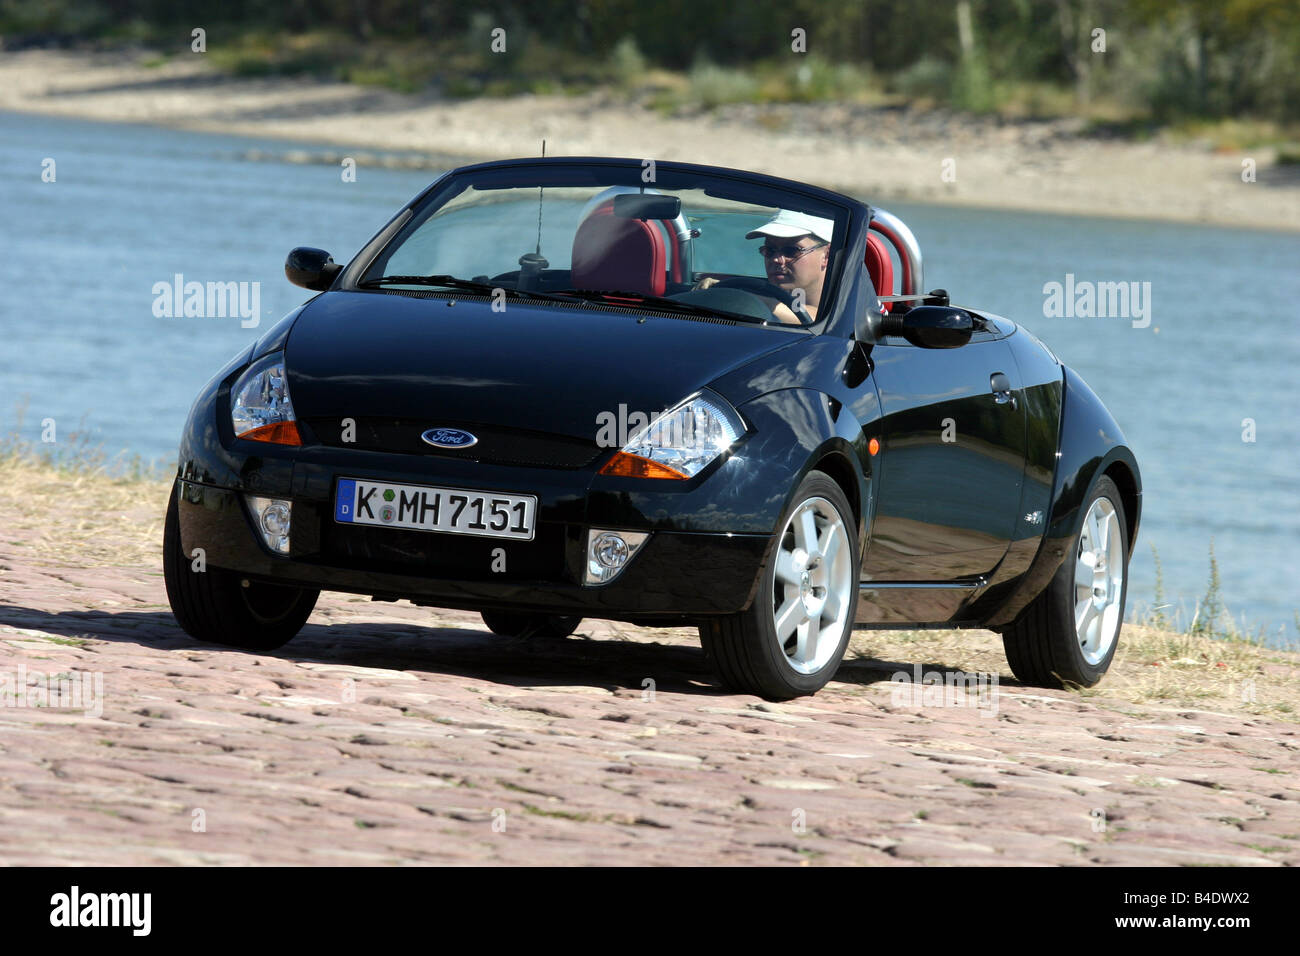 Car Ford Street Ka Elegance Convertible Model Year 2002 Black Open Top Front View